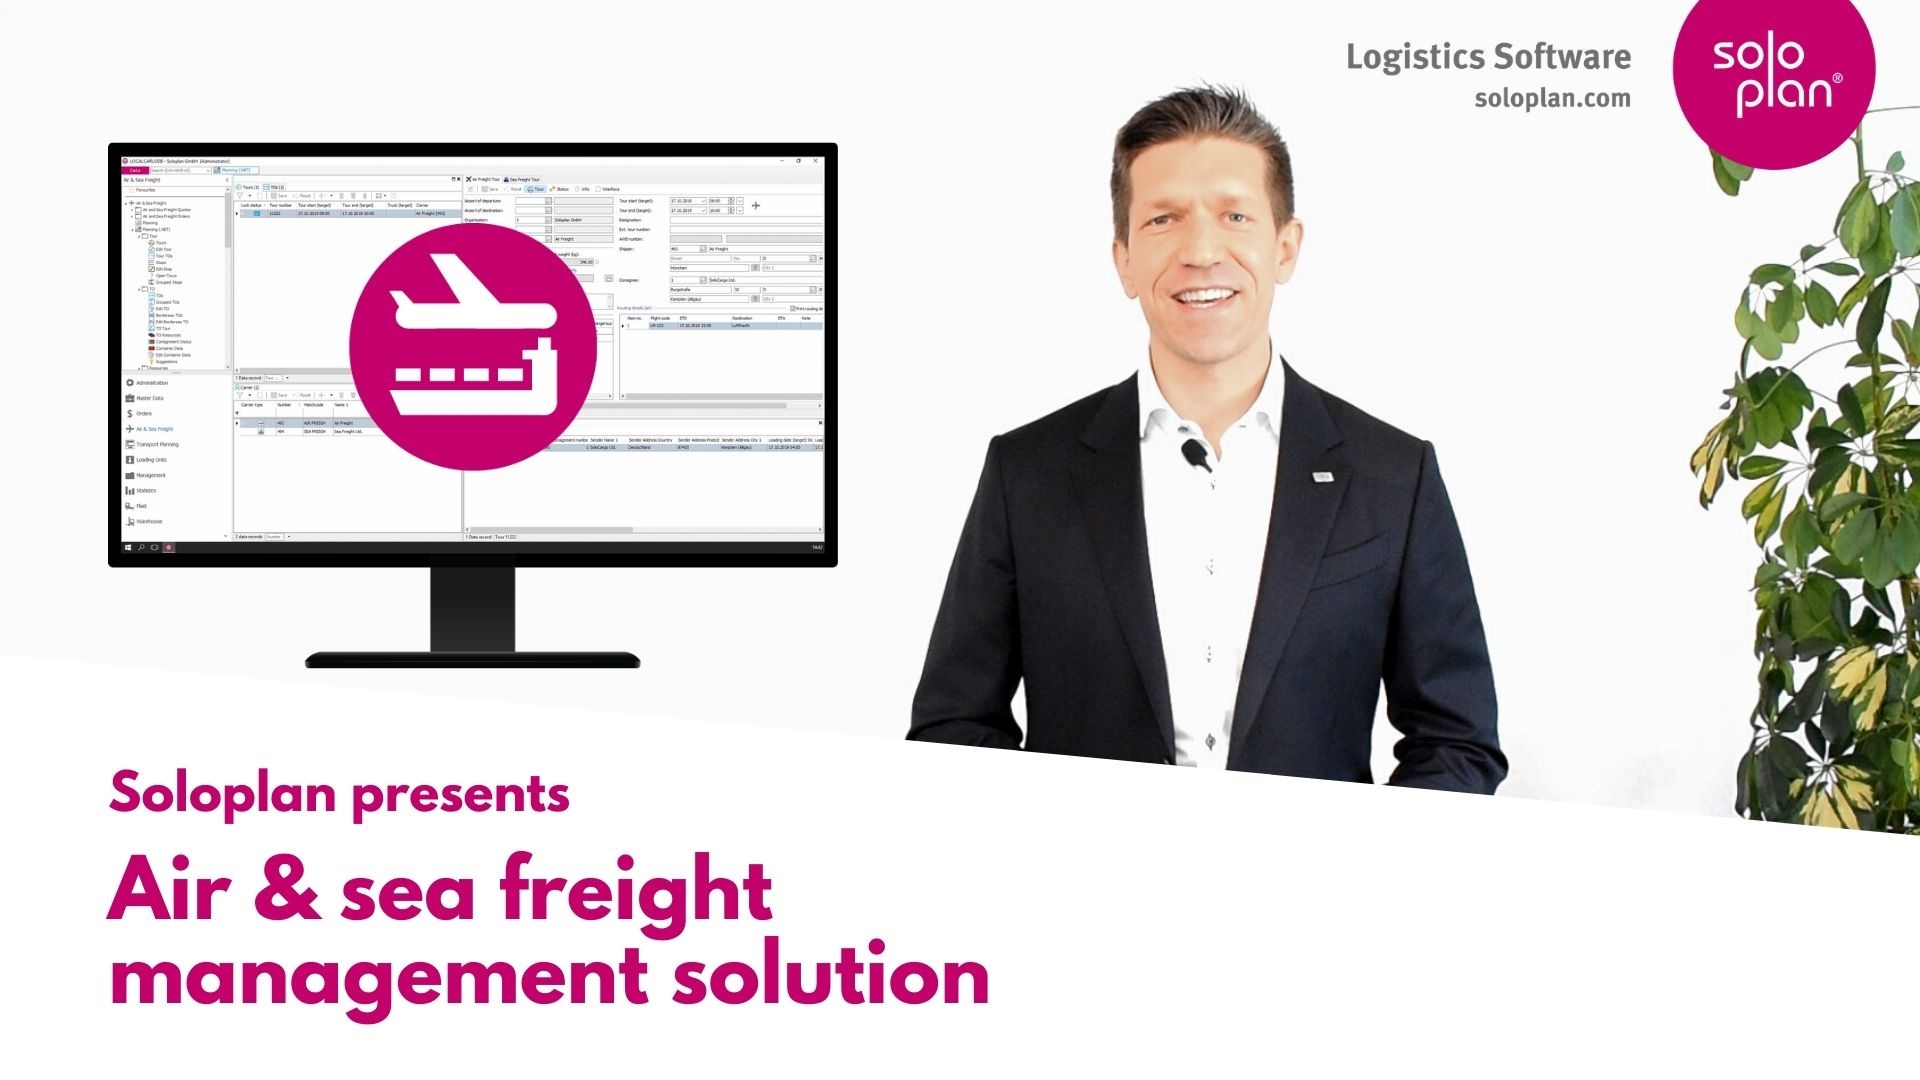 Air & sea freight management solution